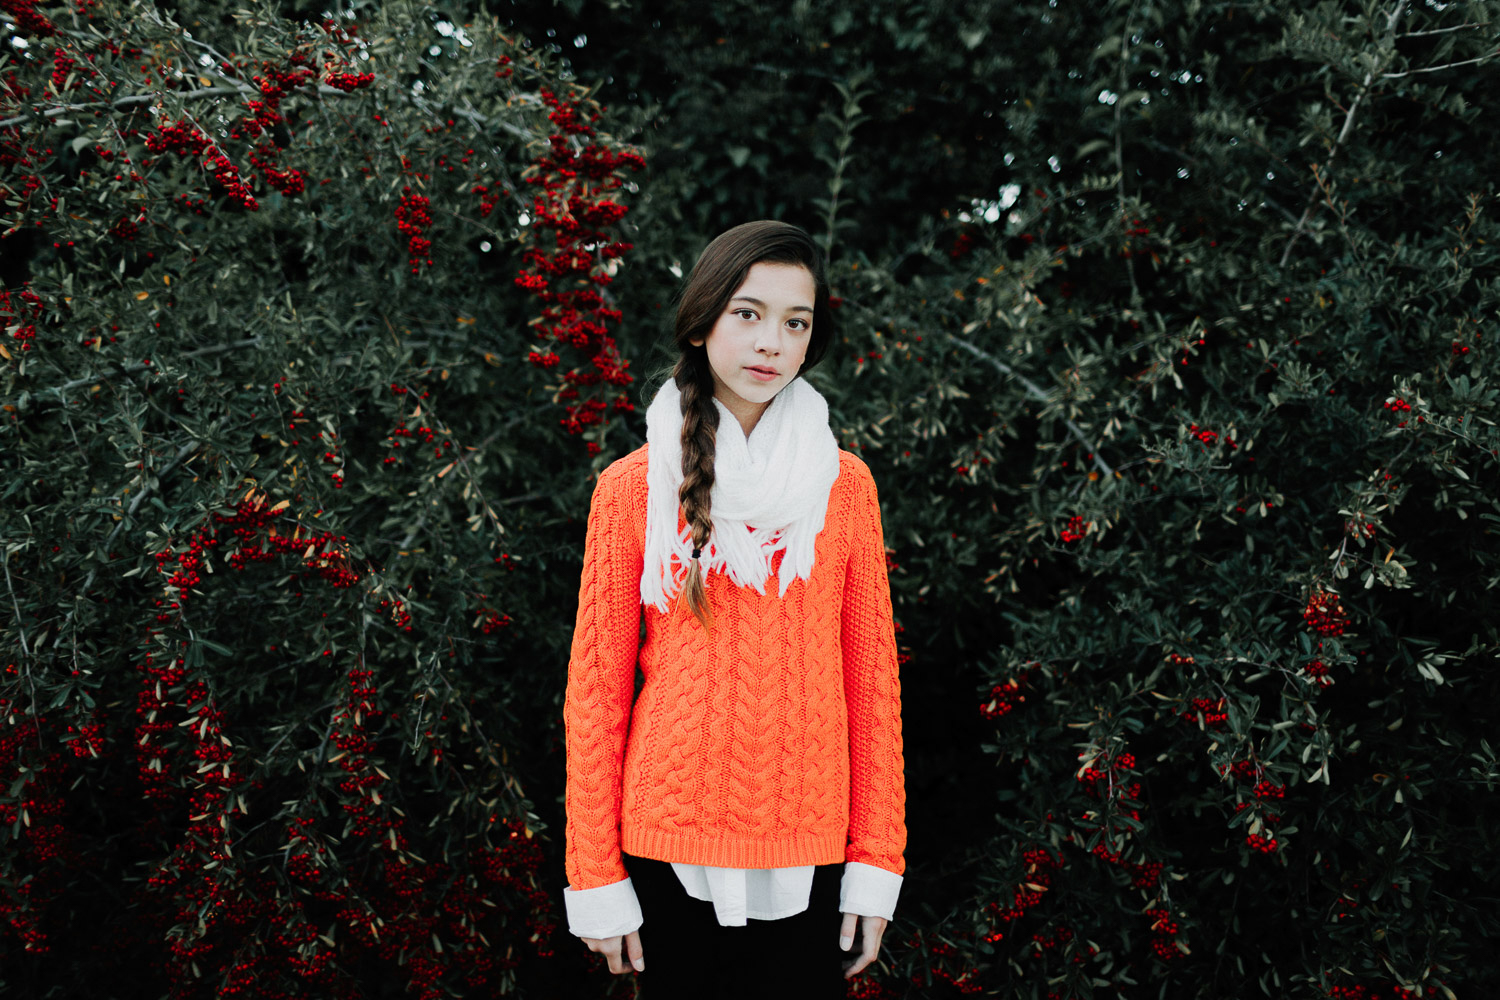 Image of a girl wearing an orange sweater